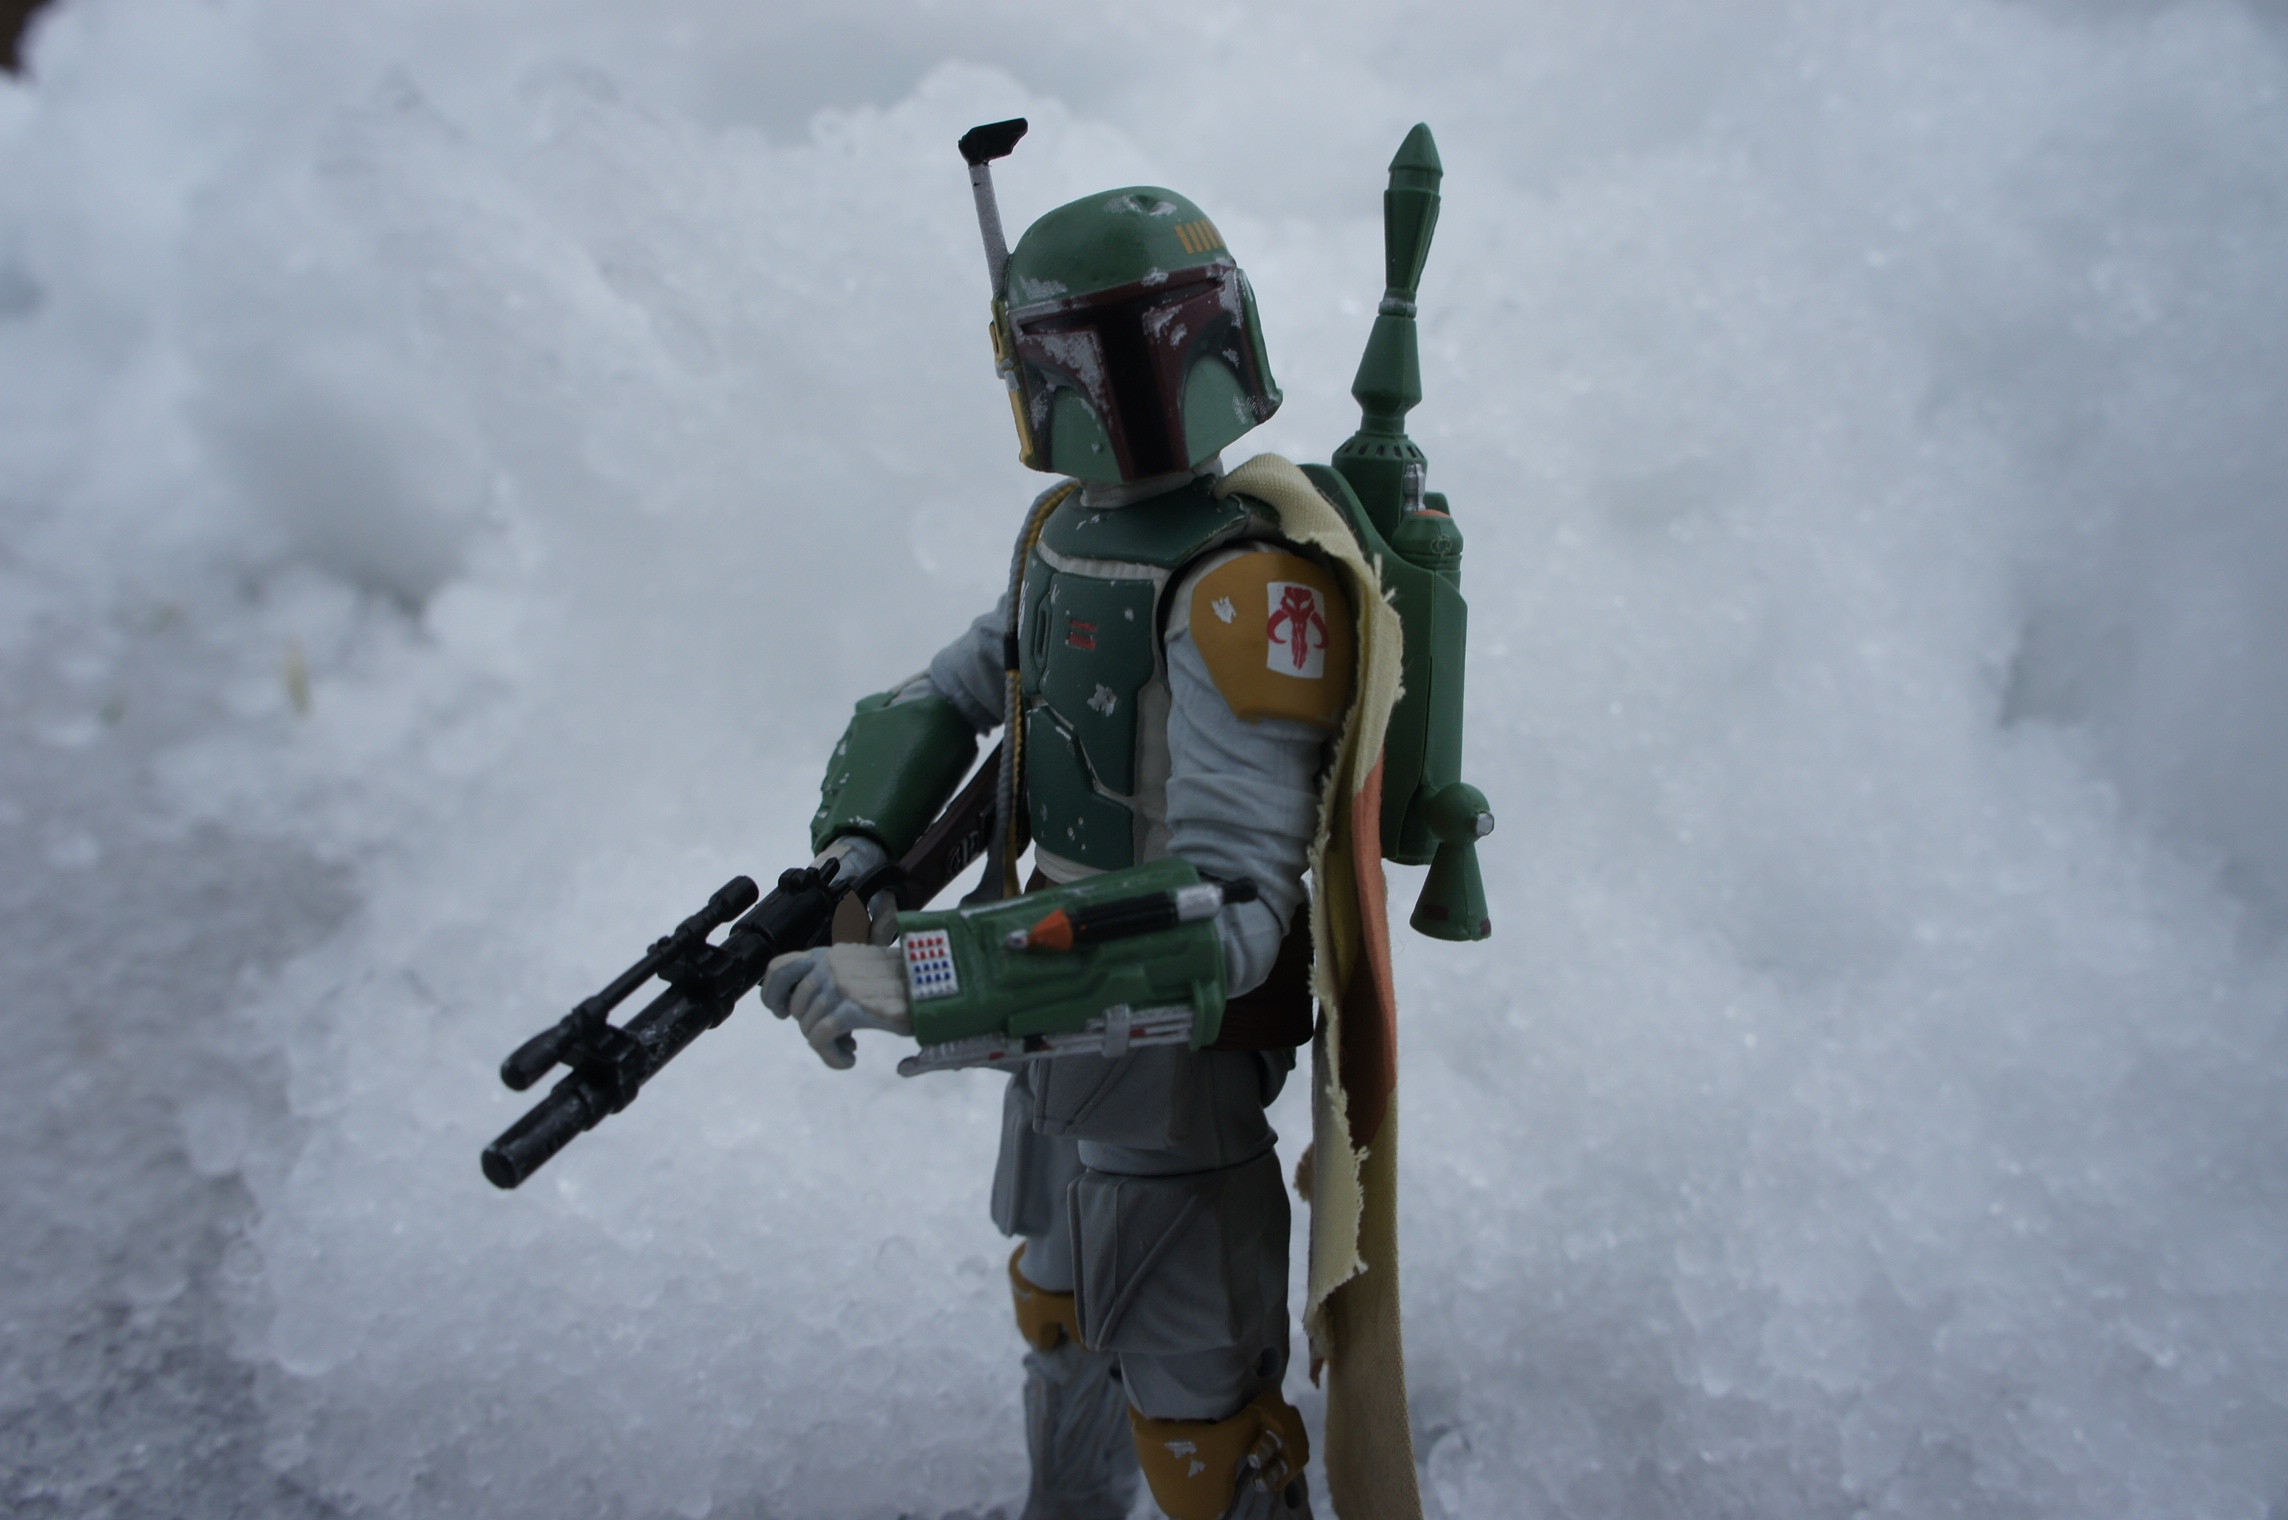 I call this… Fett in the snow